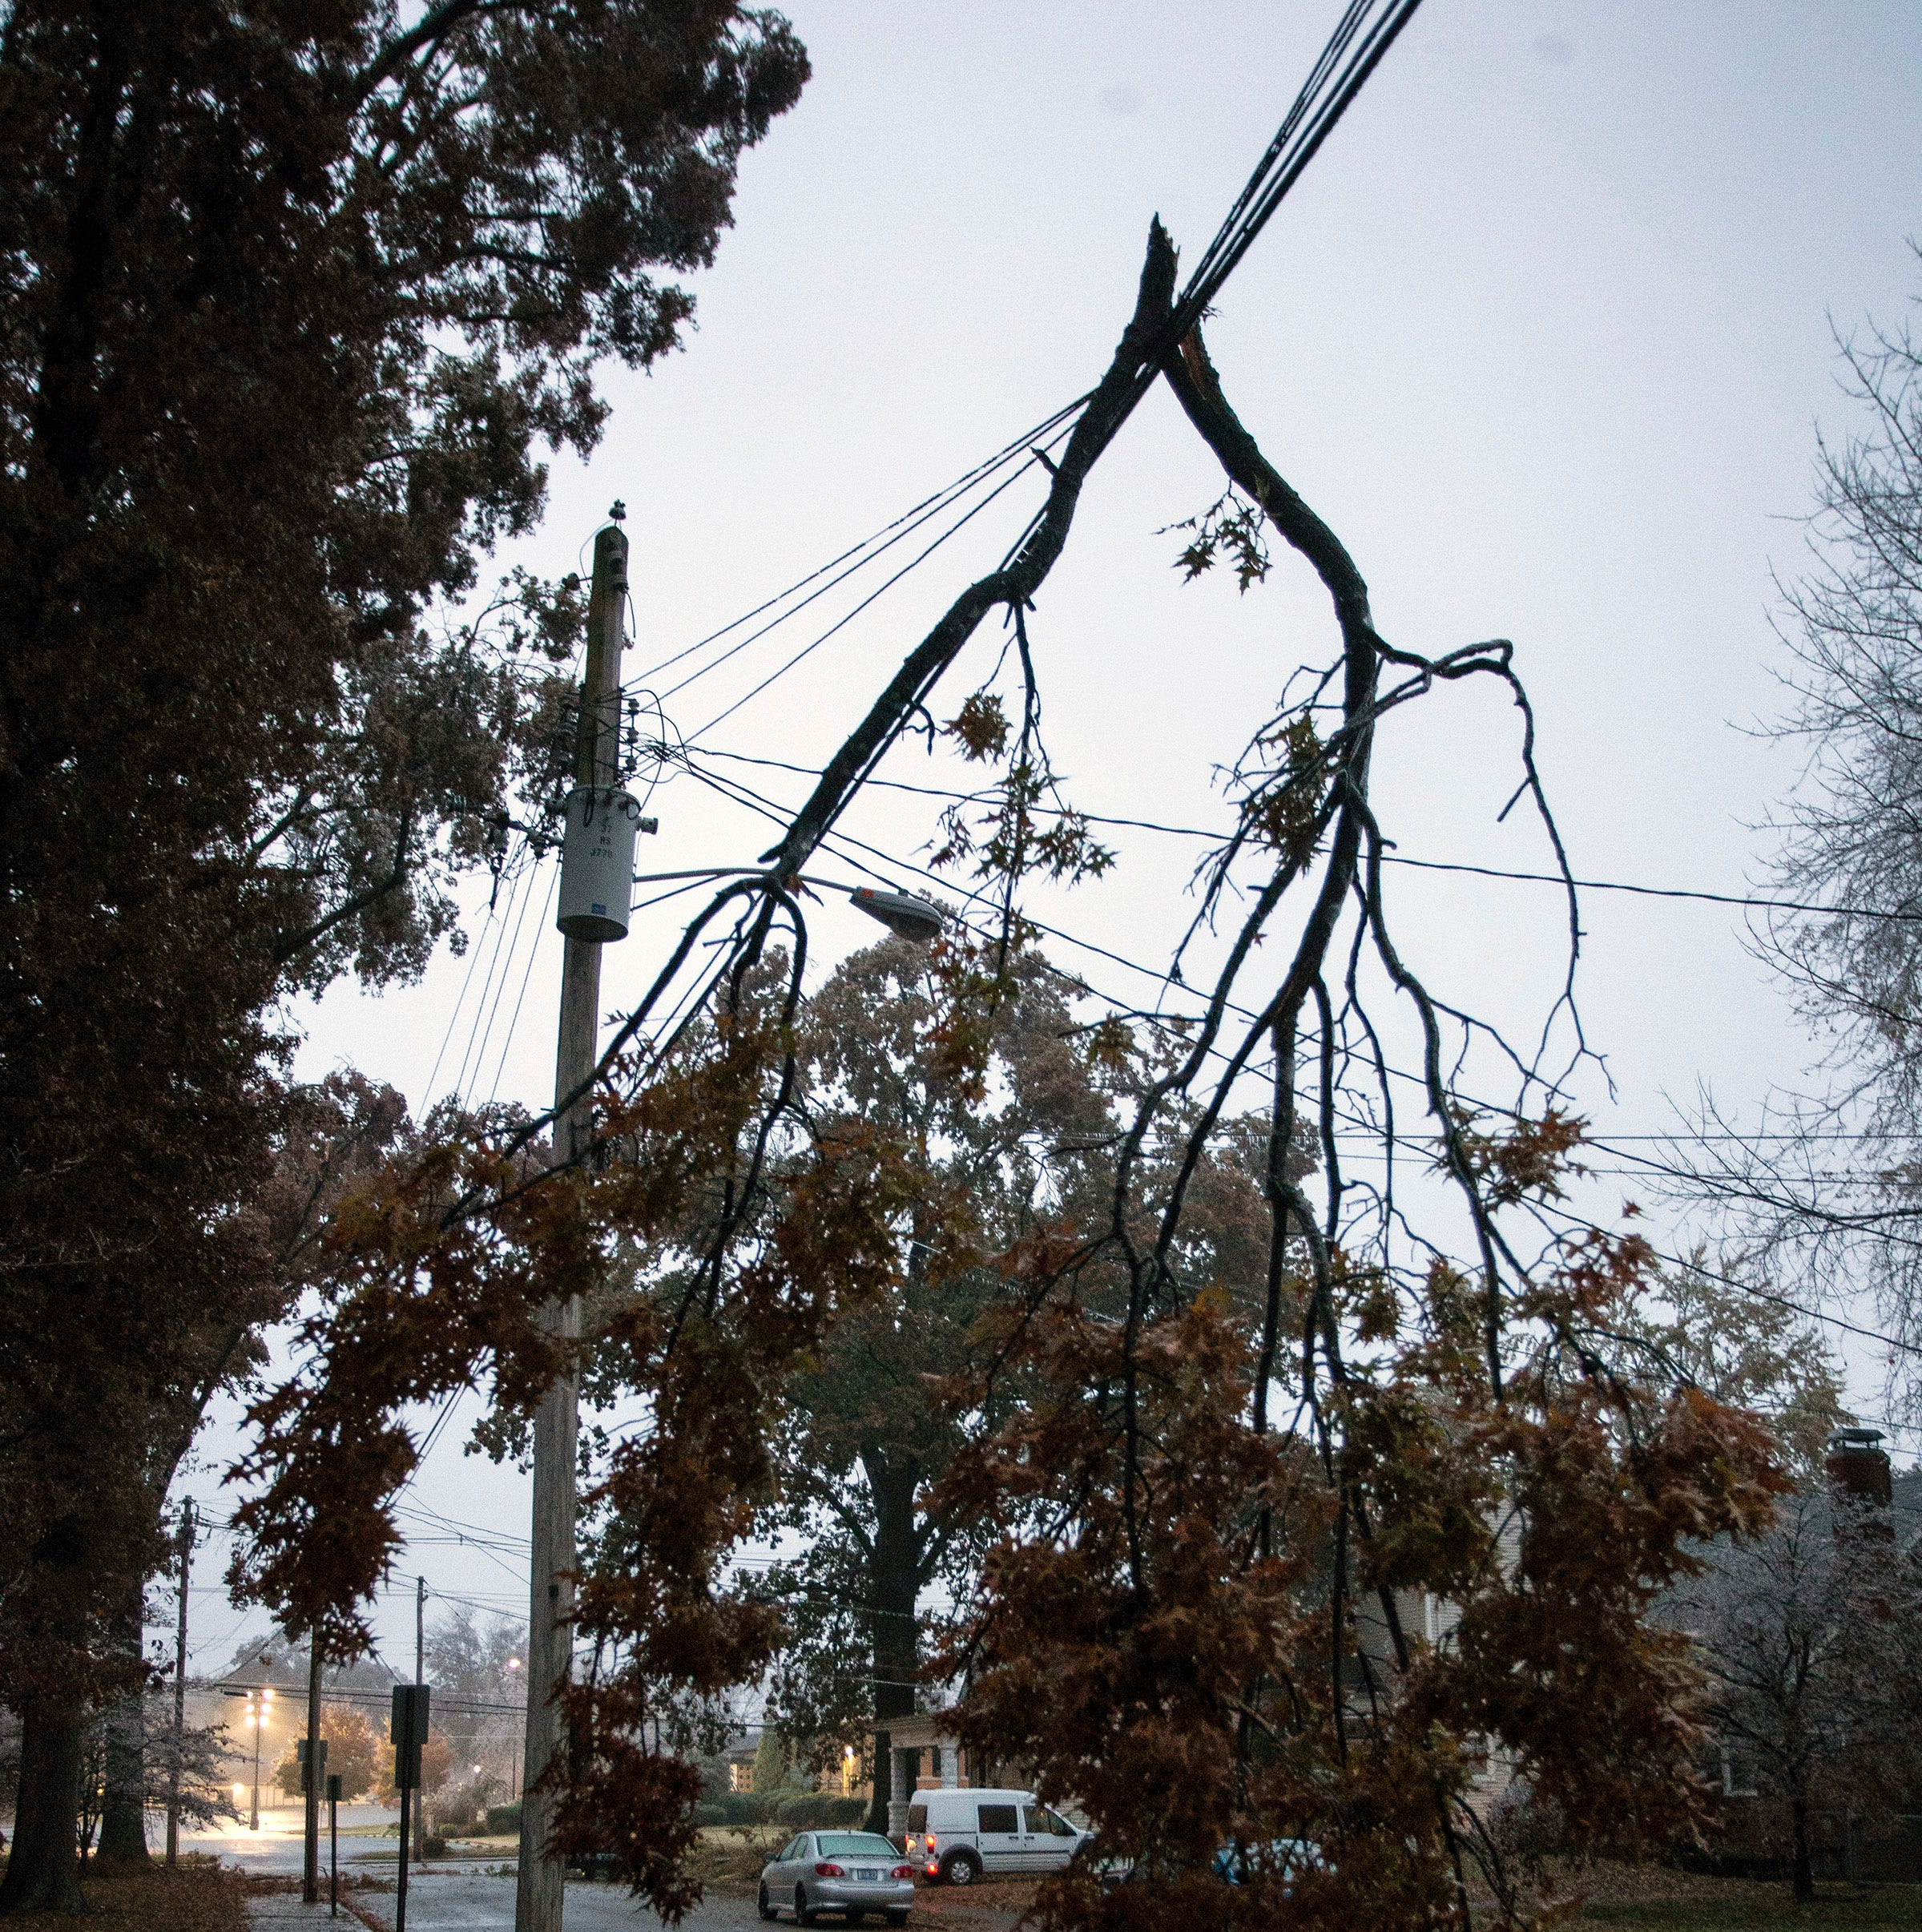 Why don't we bury power lines in Louisville to prevent blackouts?